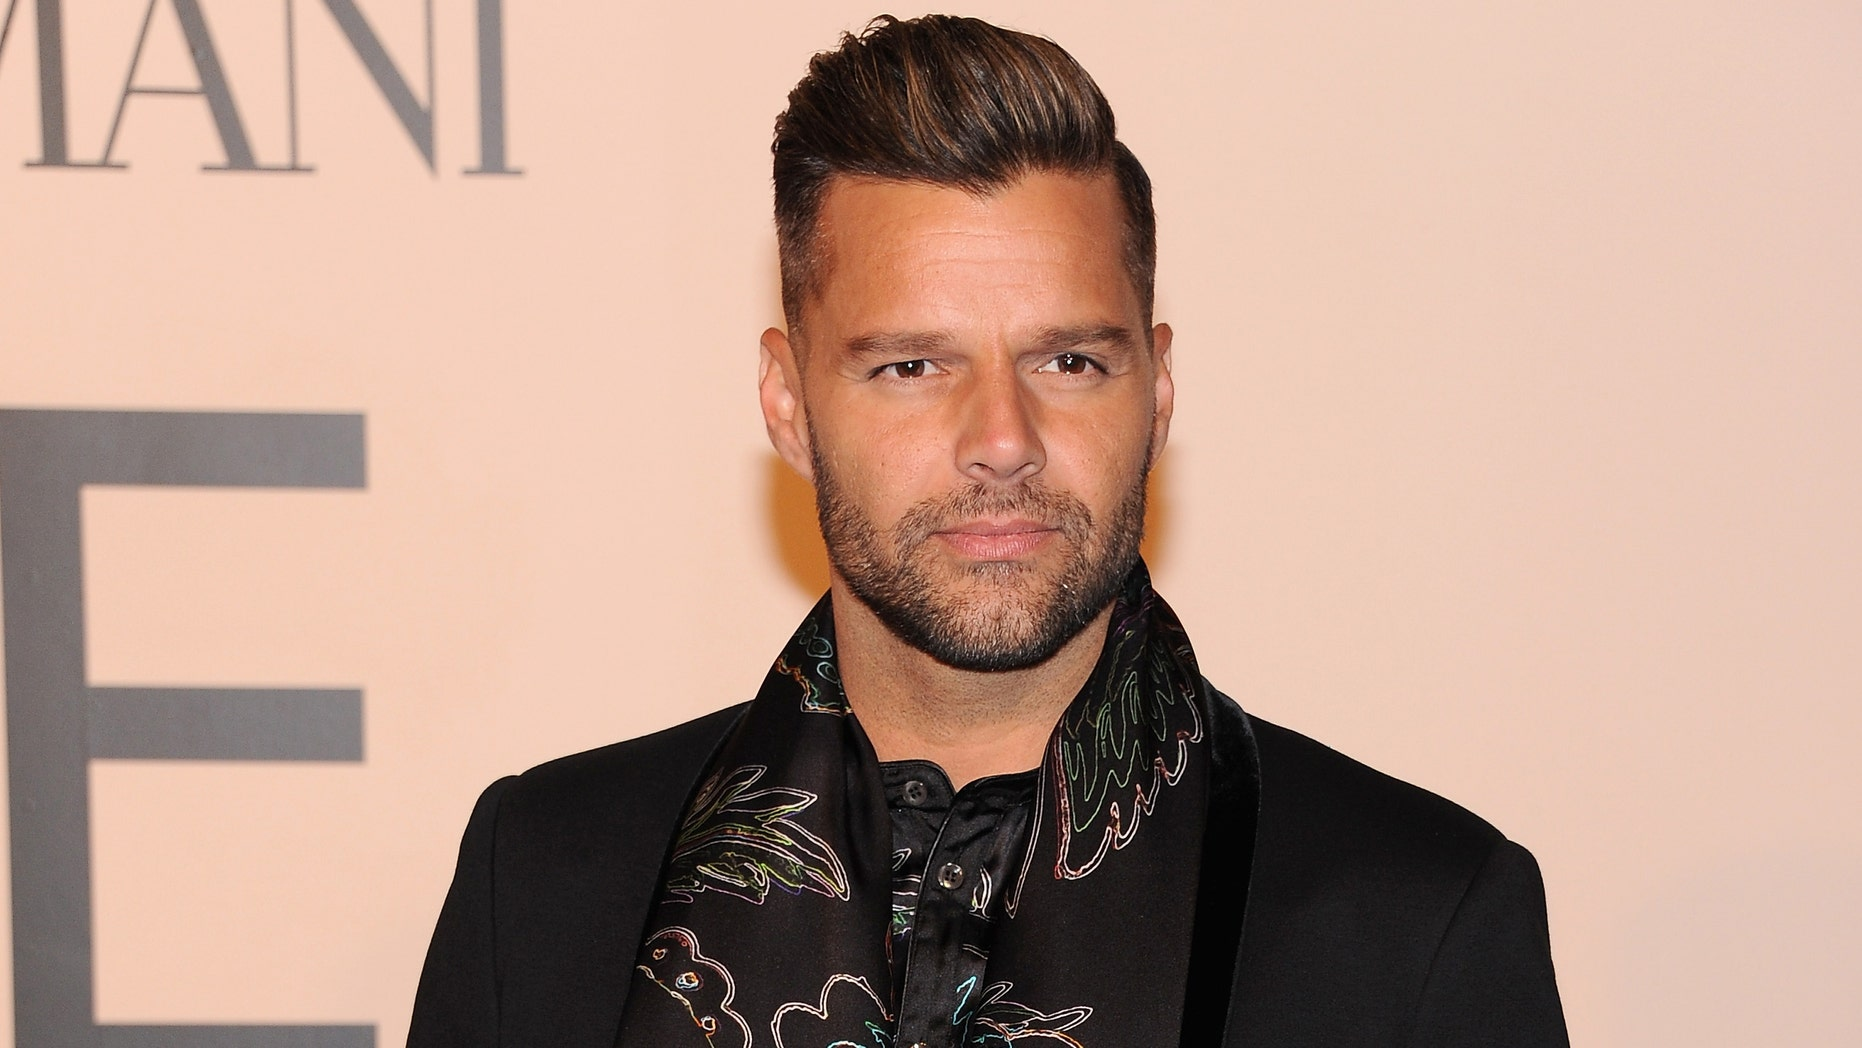 Ricky Martin attends Giorgio Armani One Night Only NYC at SuperPier on October 24, 2013 in New York City.